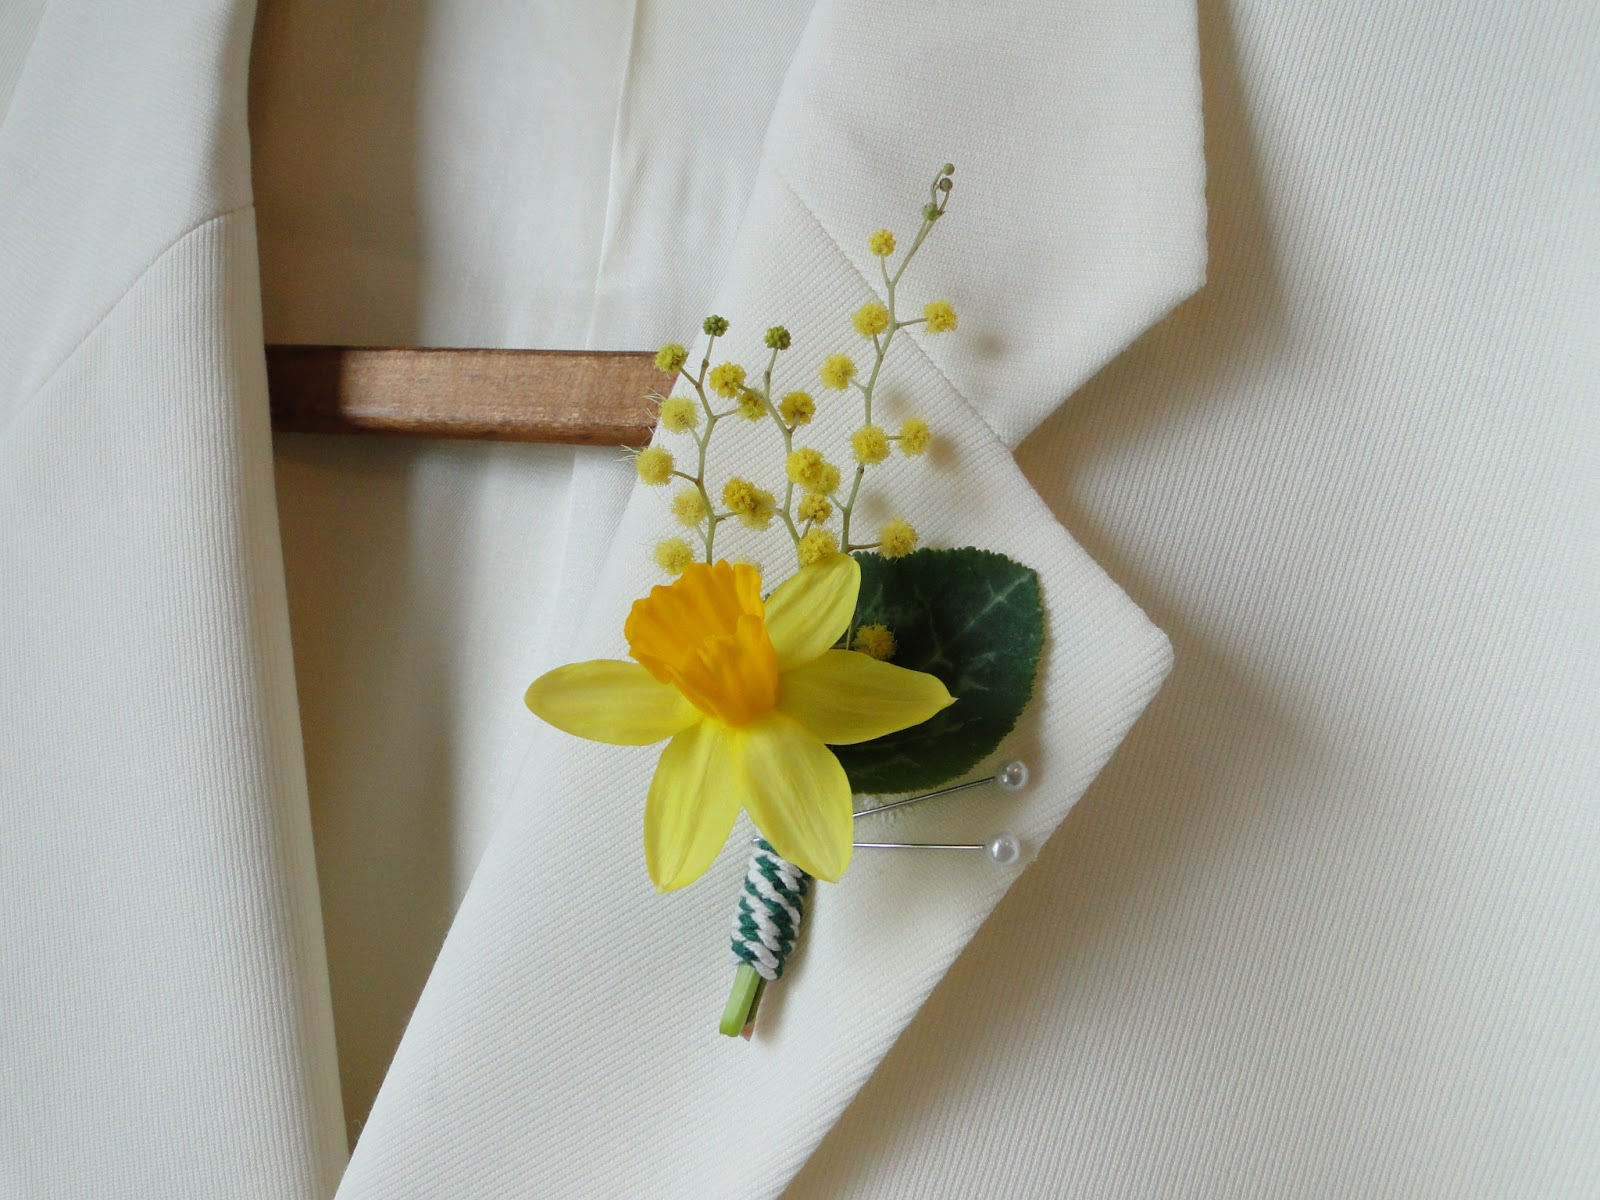 How To Make Wedding Buttonholes: The Confetti Blog: The Real Flower Petal Confetti Co